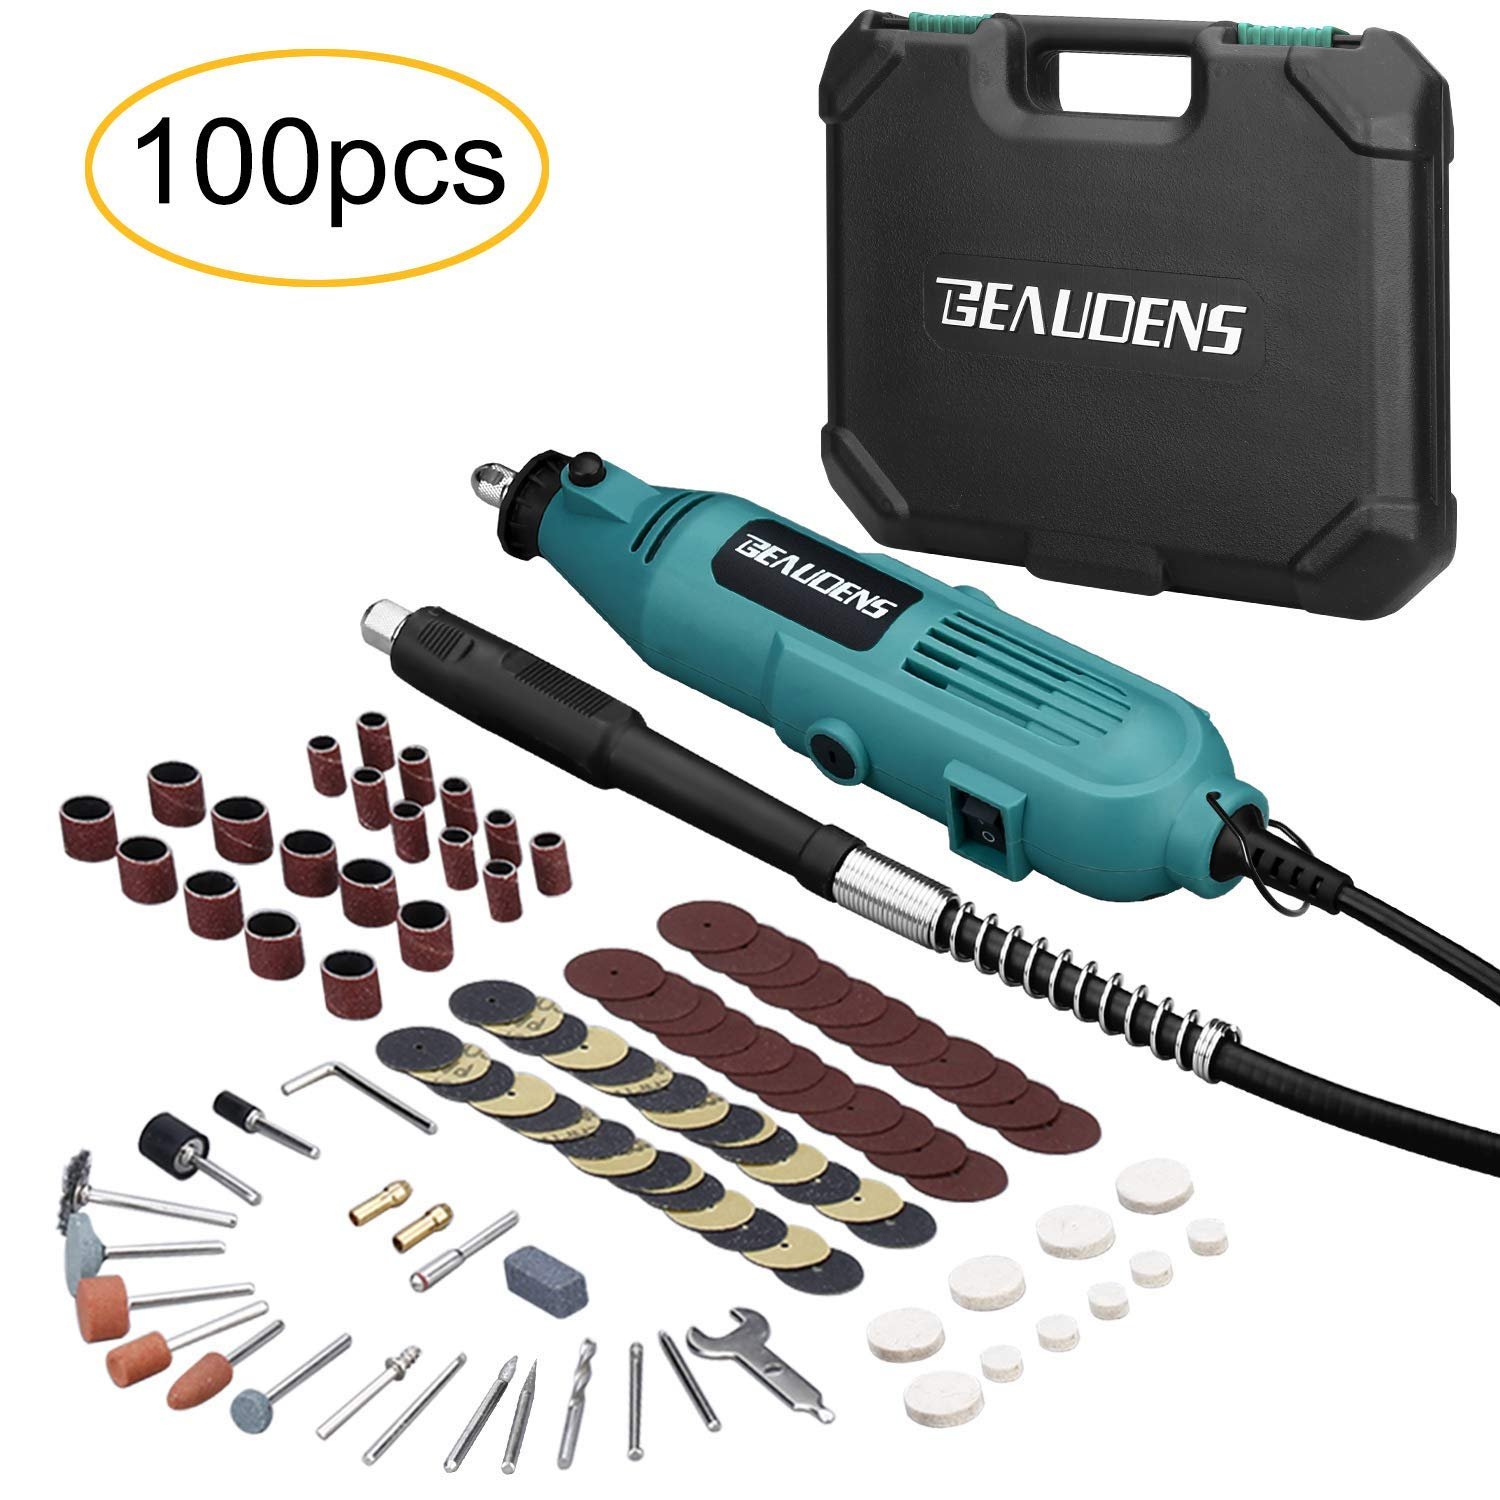 BEAUDENS Rotary Tool Kit with Flexible Shaft, 100 Multifunctional Accessories, 6 Adjustable Variable Speed, Solid Carrying Case for DIY Crafting Projects